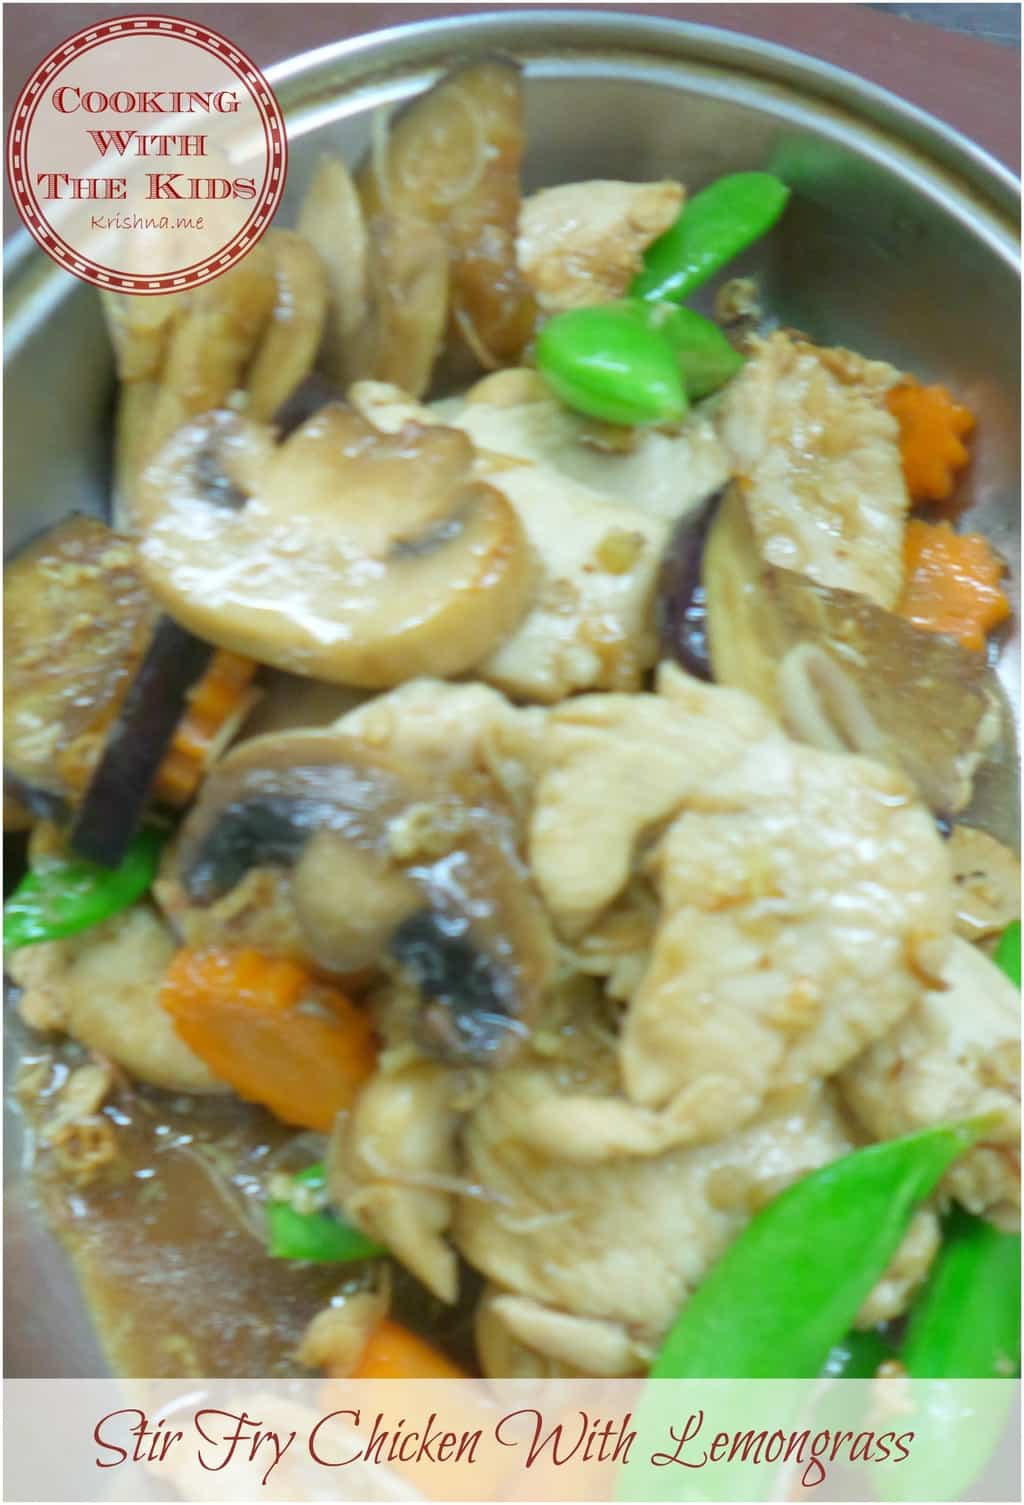 Cooking With the Kids – Learning how to cook Thai Stir Fry Chicken With Lemongrass (Xao Xa Ot)